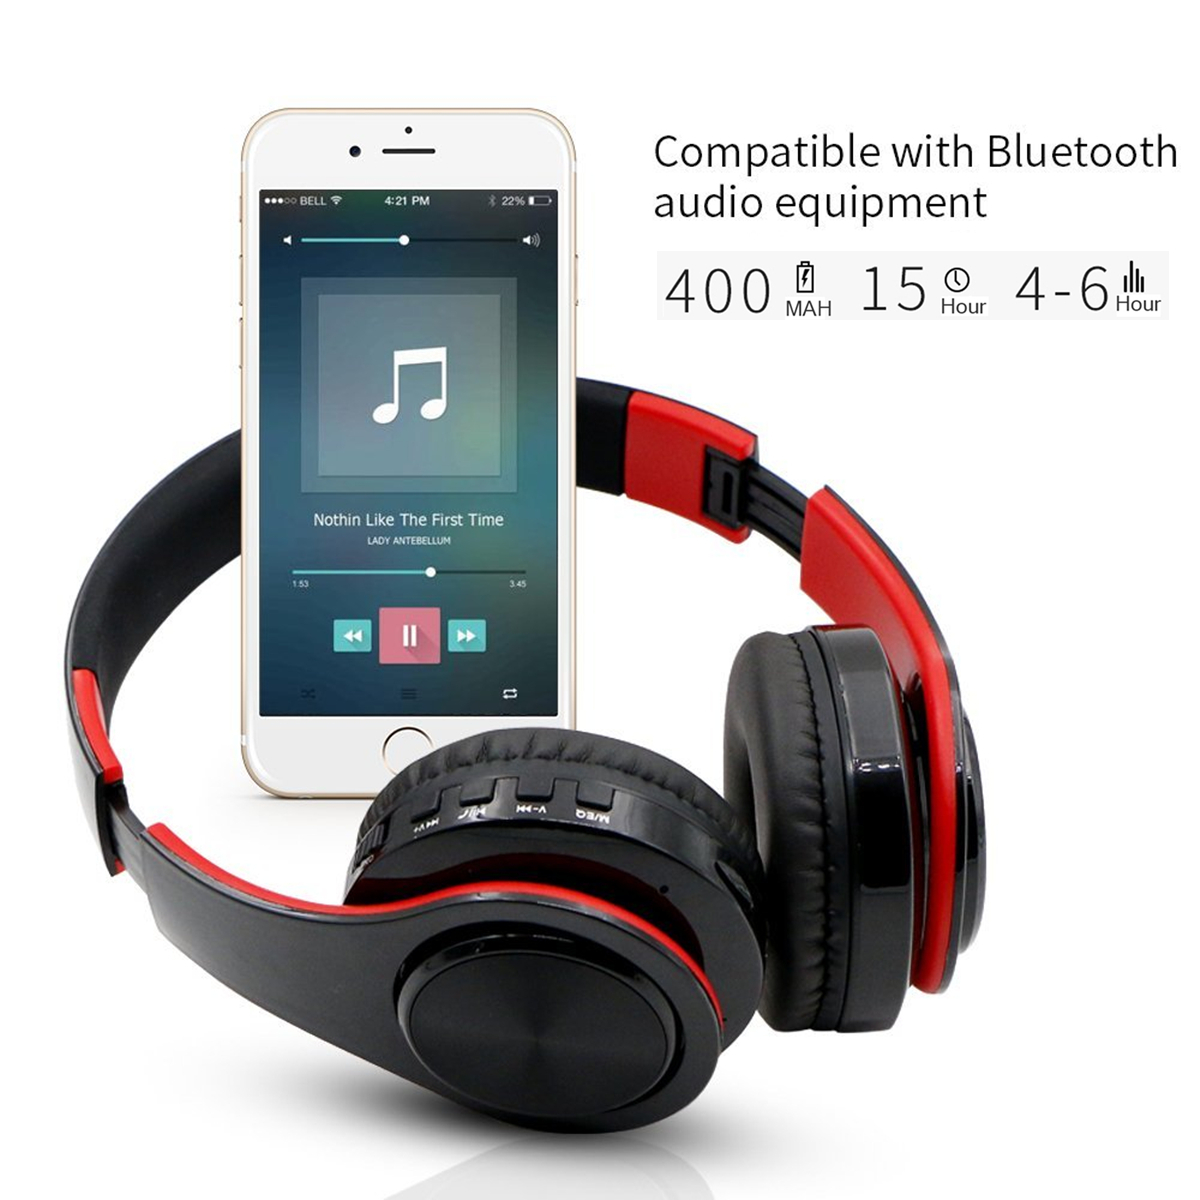 Hifi Stereo Bass Over Ear Wireless Bluetooth 4.0 A2DP Headphones with Mic FM TF card, AUX Noise Cancelling Foldable Headband for PC/ Cell Phones/ TV Soft Earmuffs Up to 250 Hours